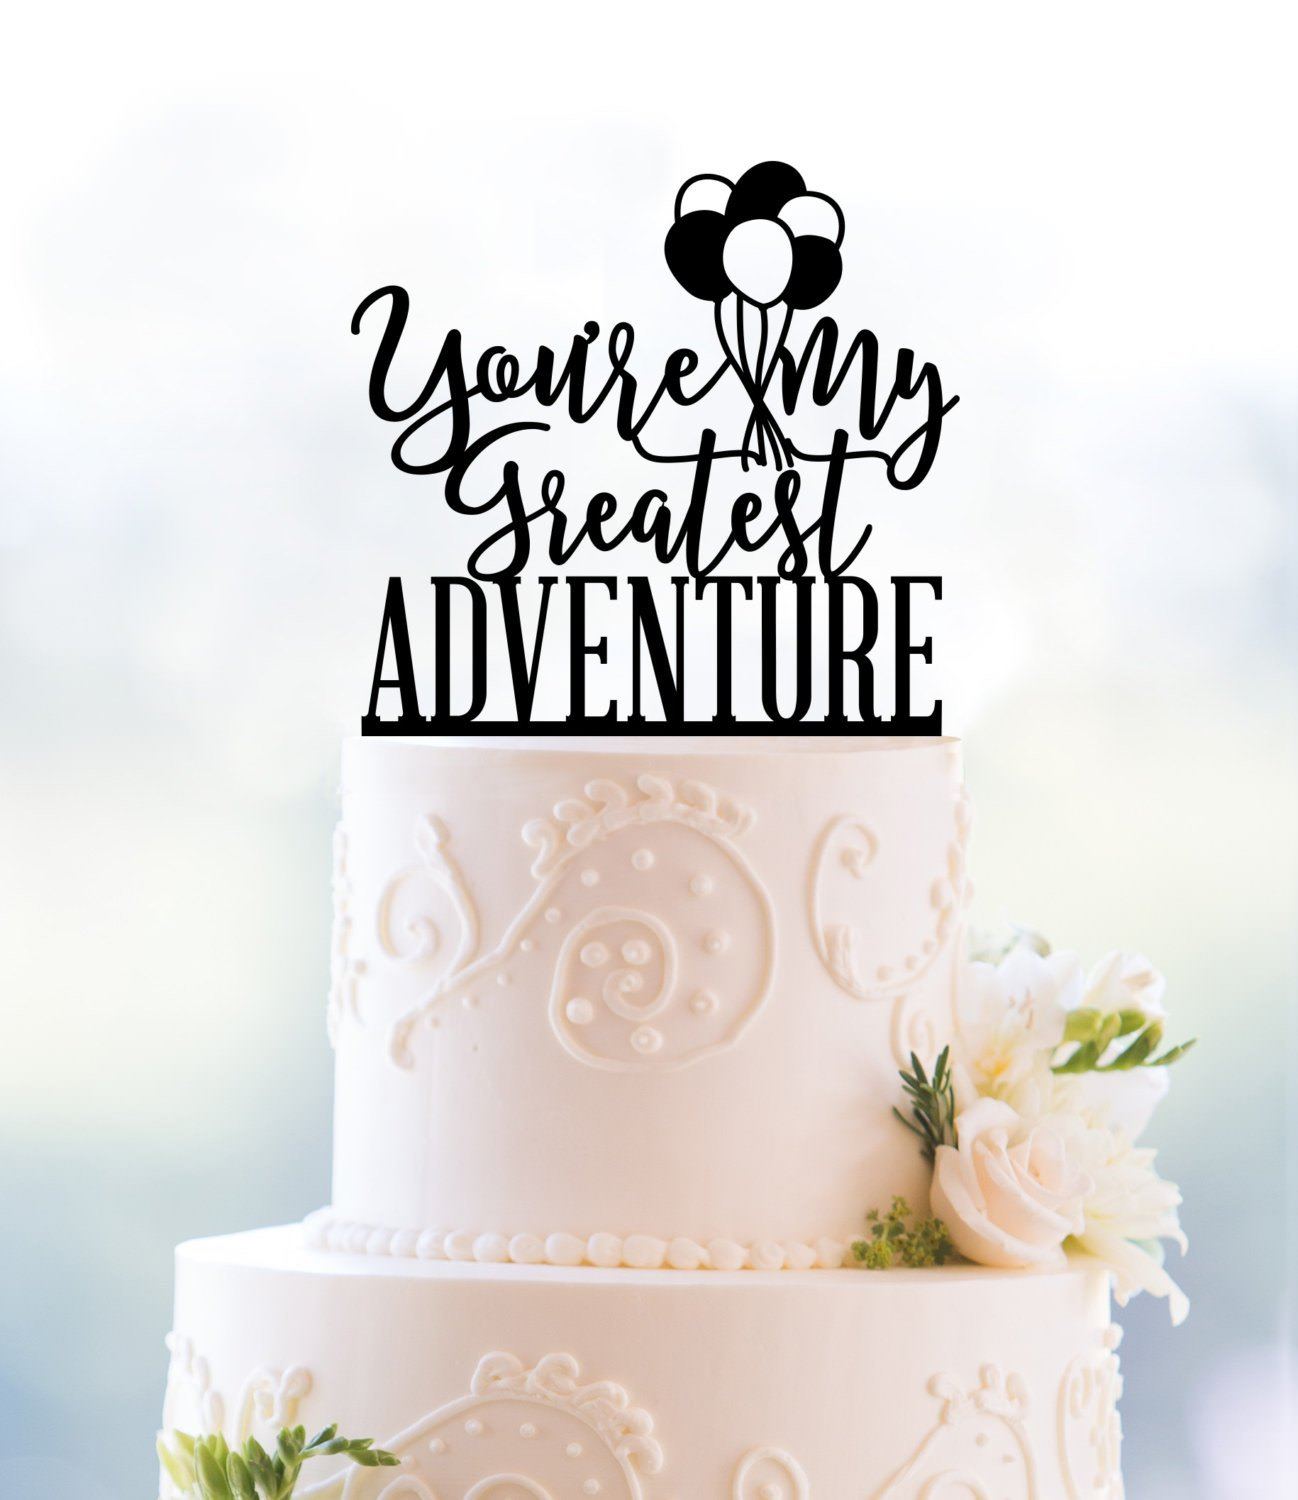 Up Greatest Adventure Up Themed Wedding Up Movie Balloon Cake Topper For Wedding Anniversary Gifts Wedding Party Favors Cake Toppers